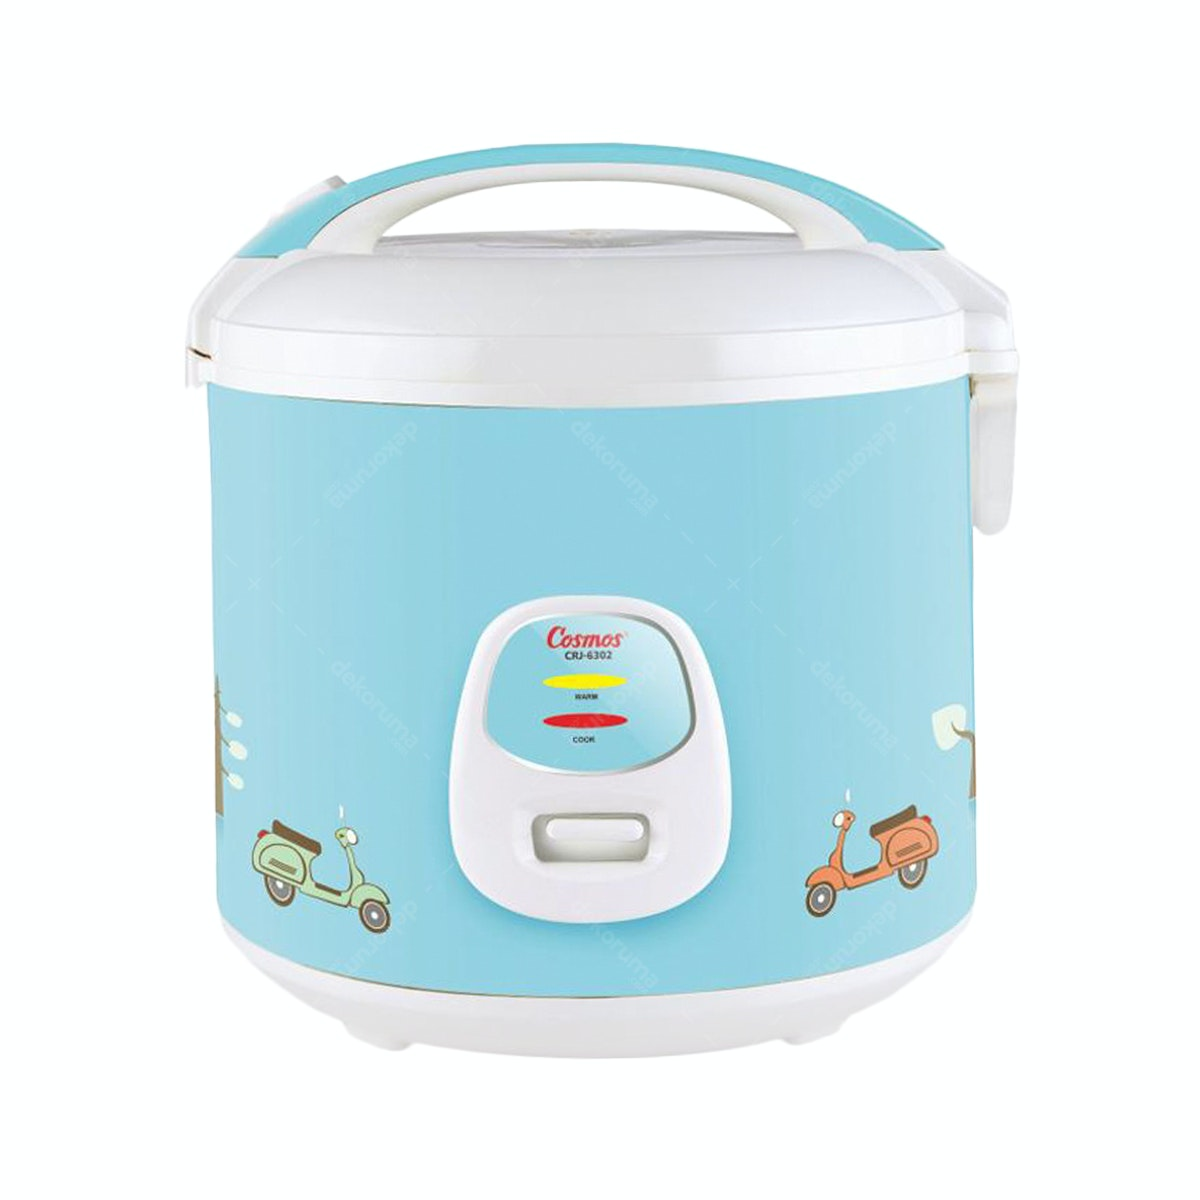 Cosmos Rice Cooker/ Magic Com (Harmond Tech) 1.8L CRJ-6302 Biru